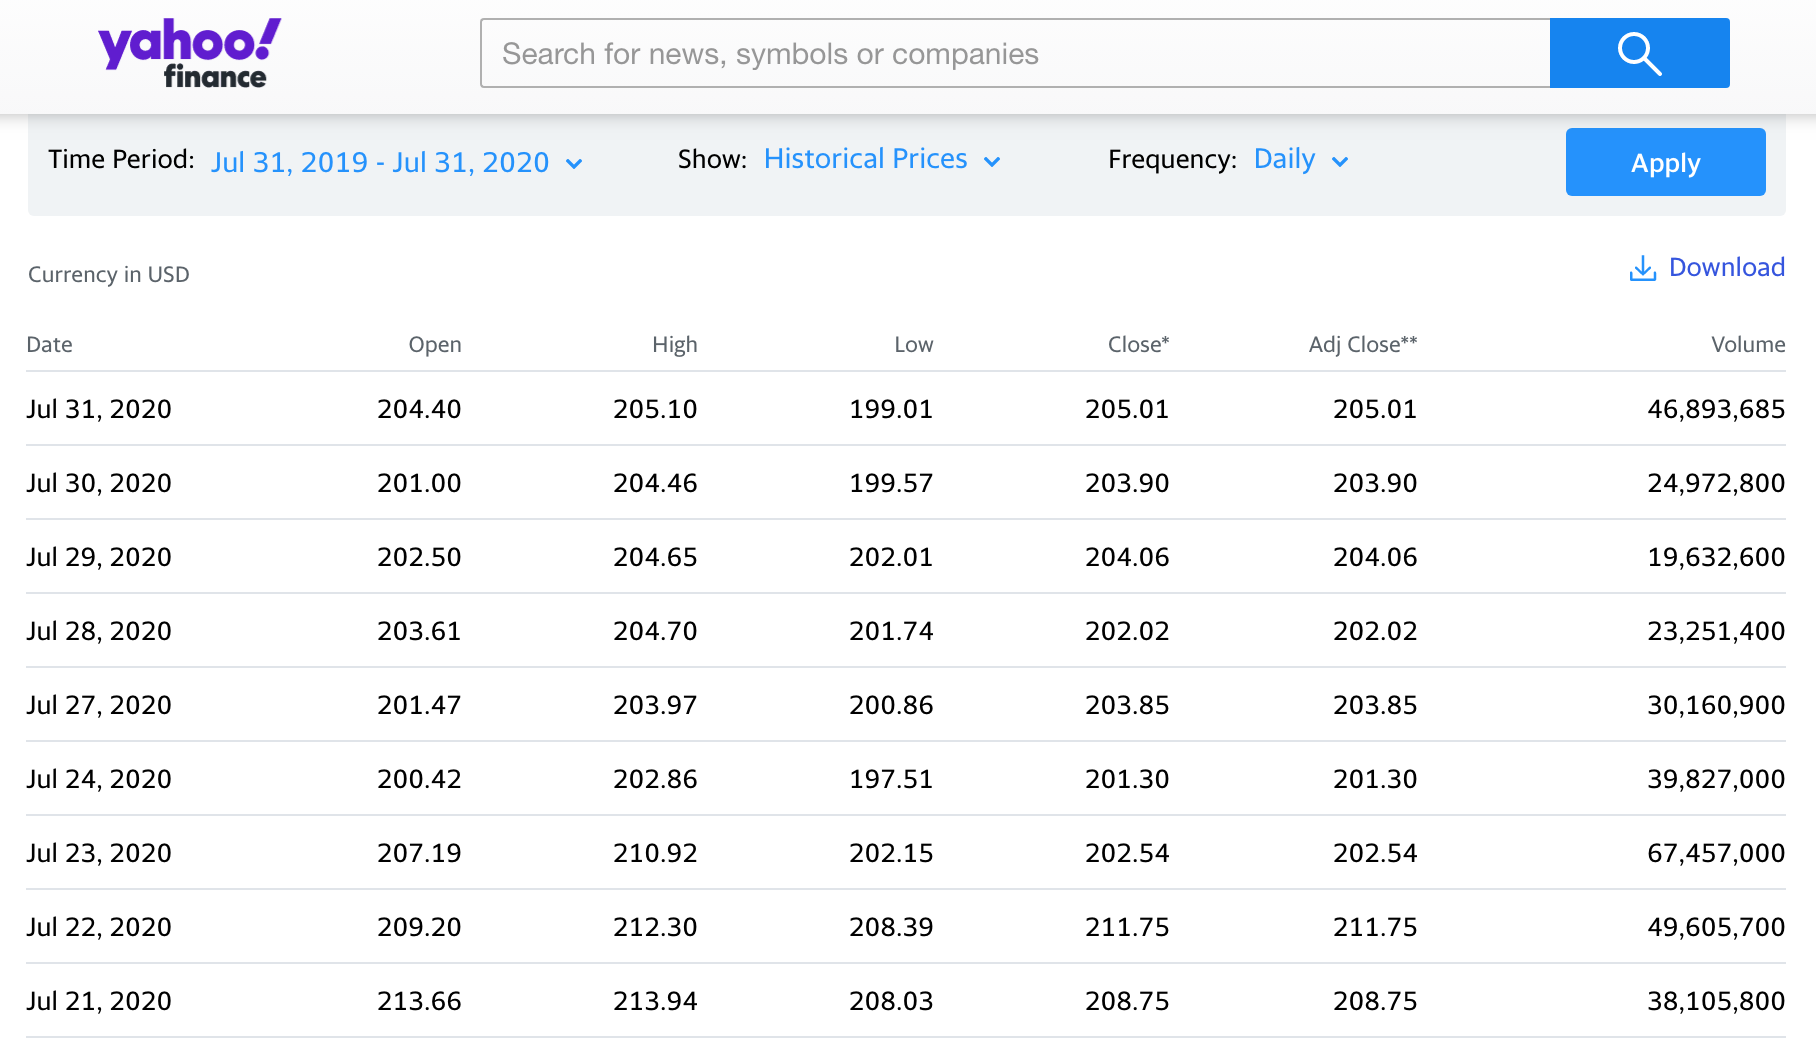 Stock price data – How to download?